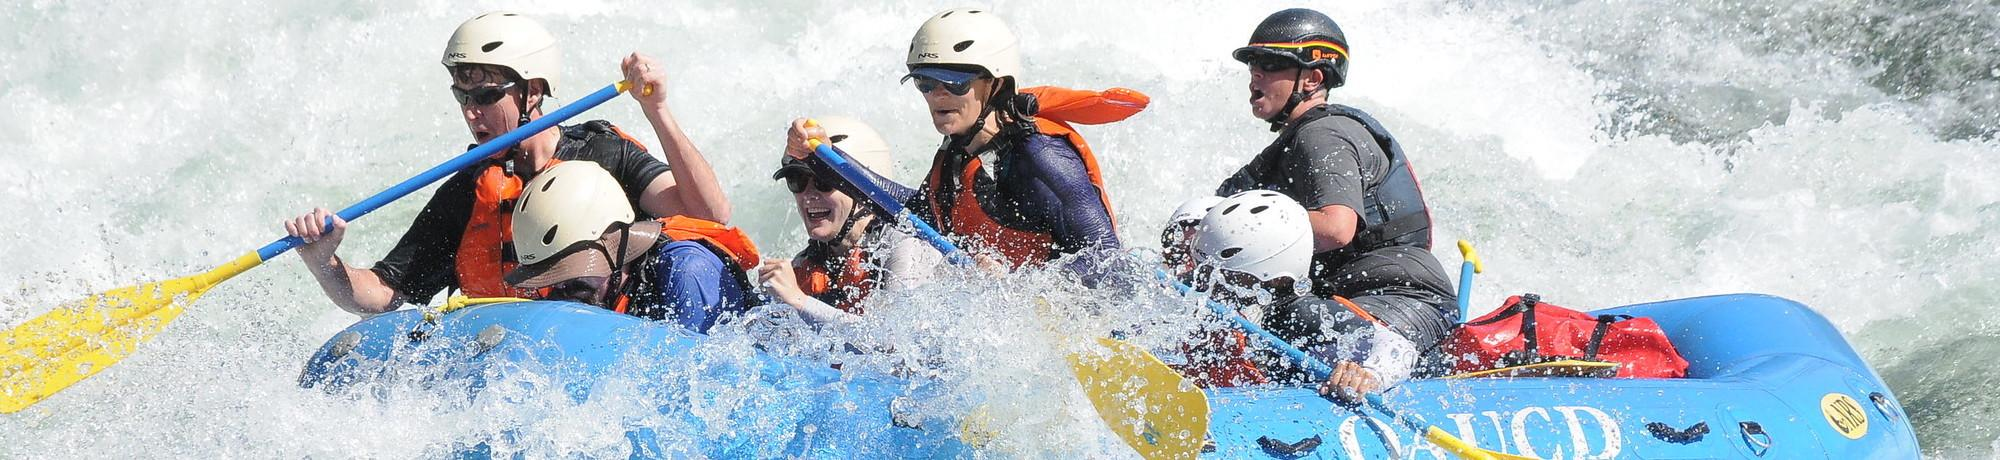 Group whitewater rafting on the American river